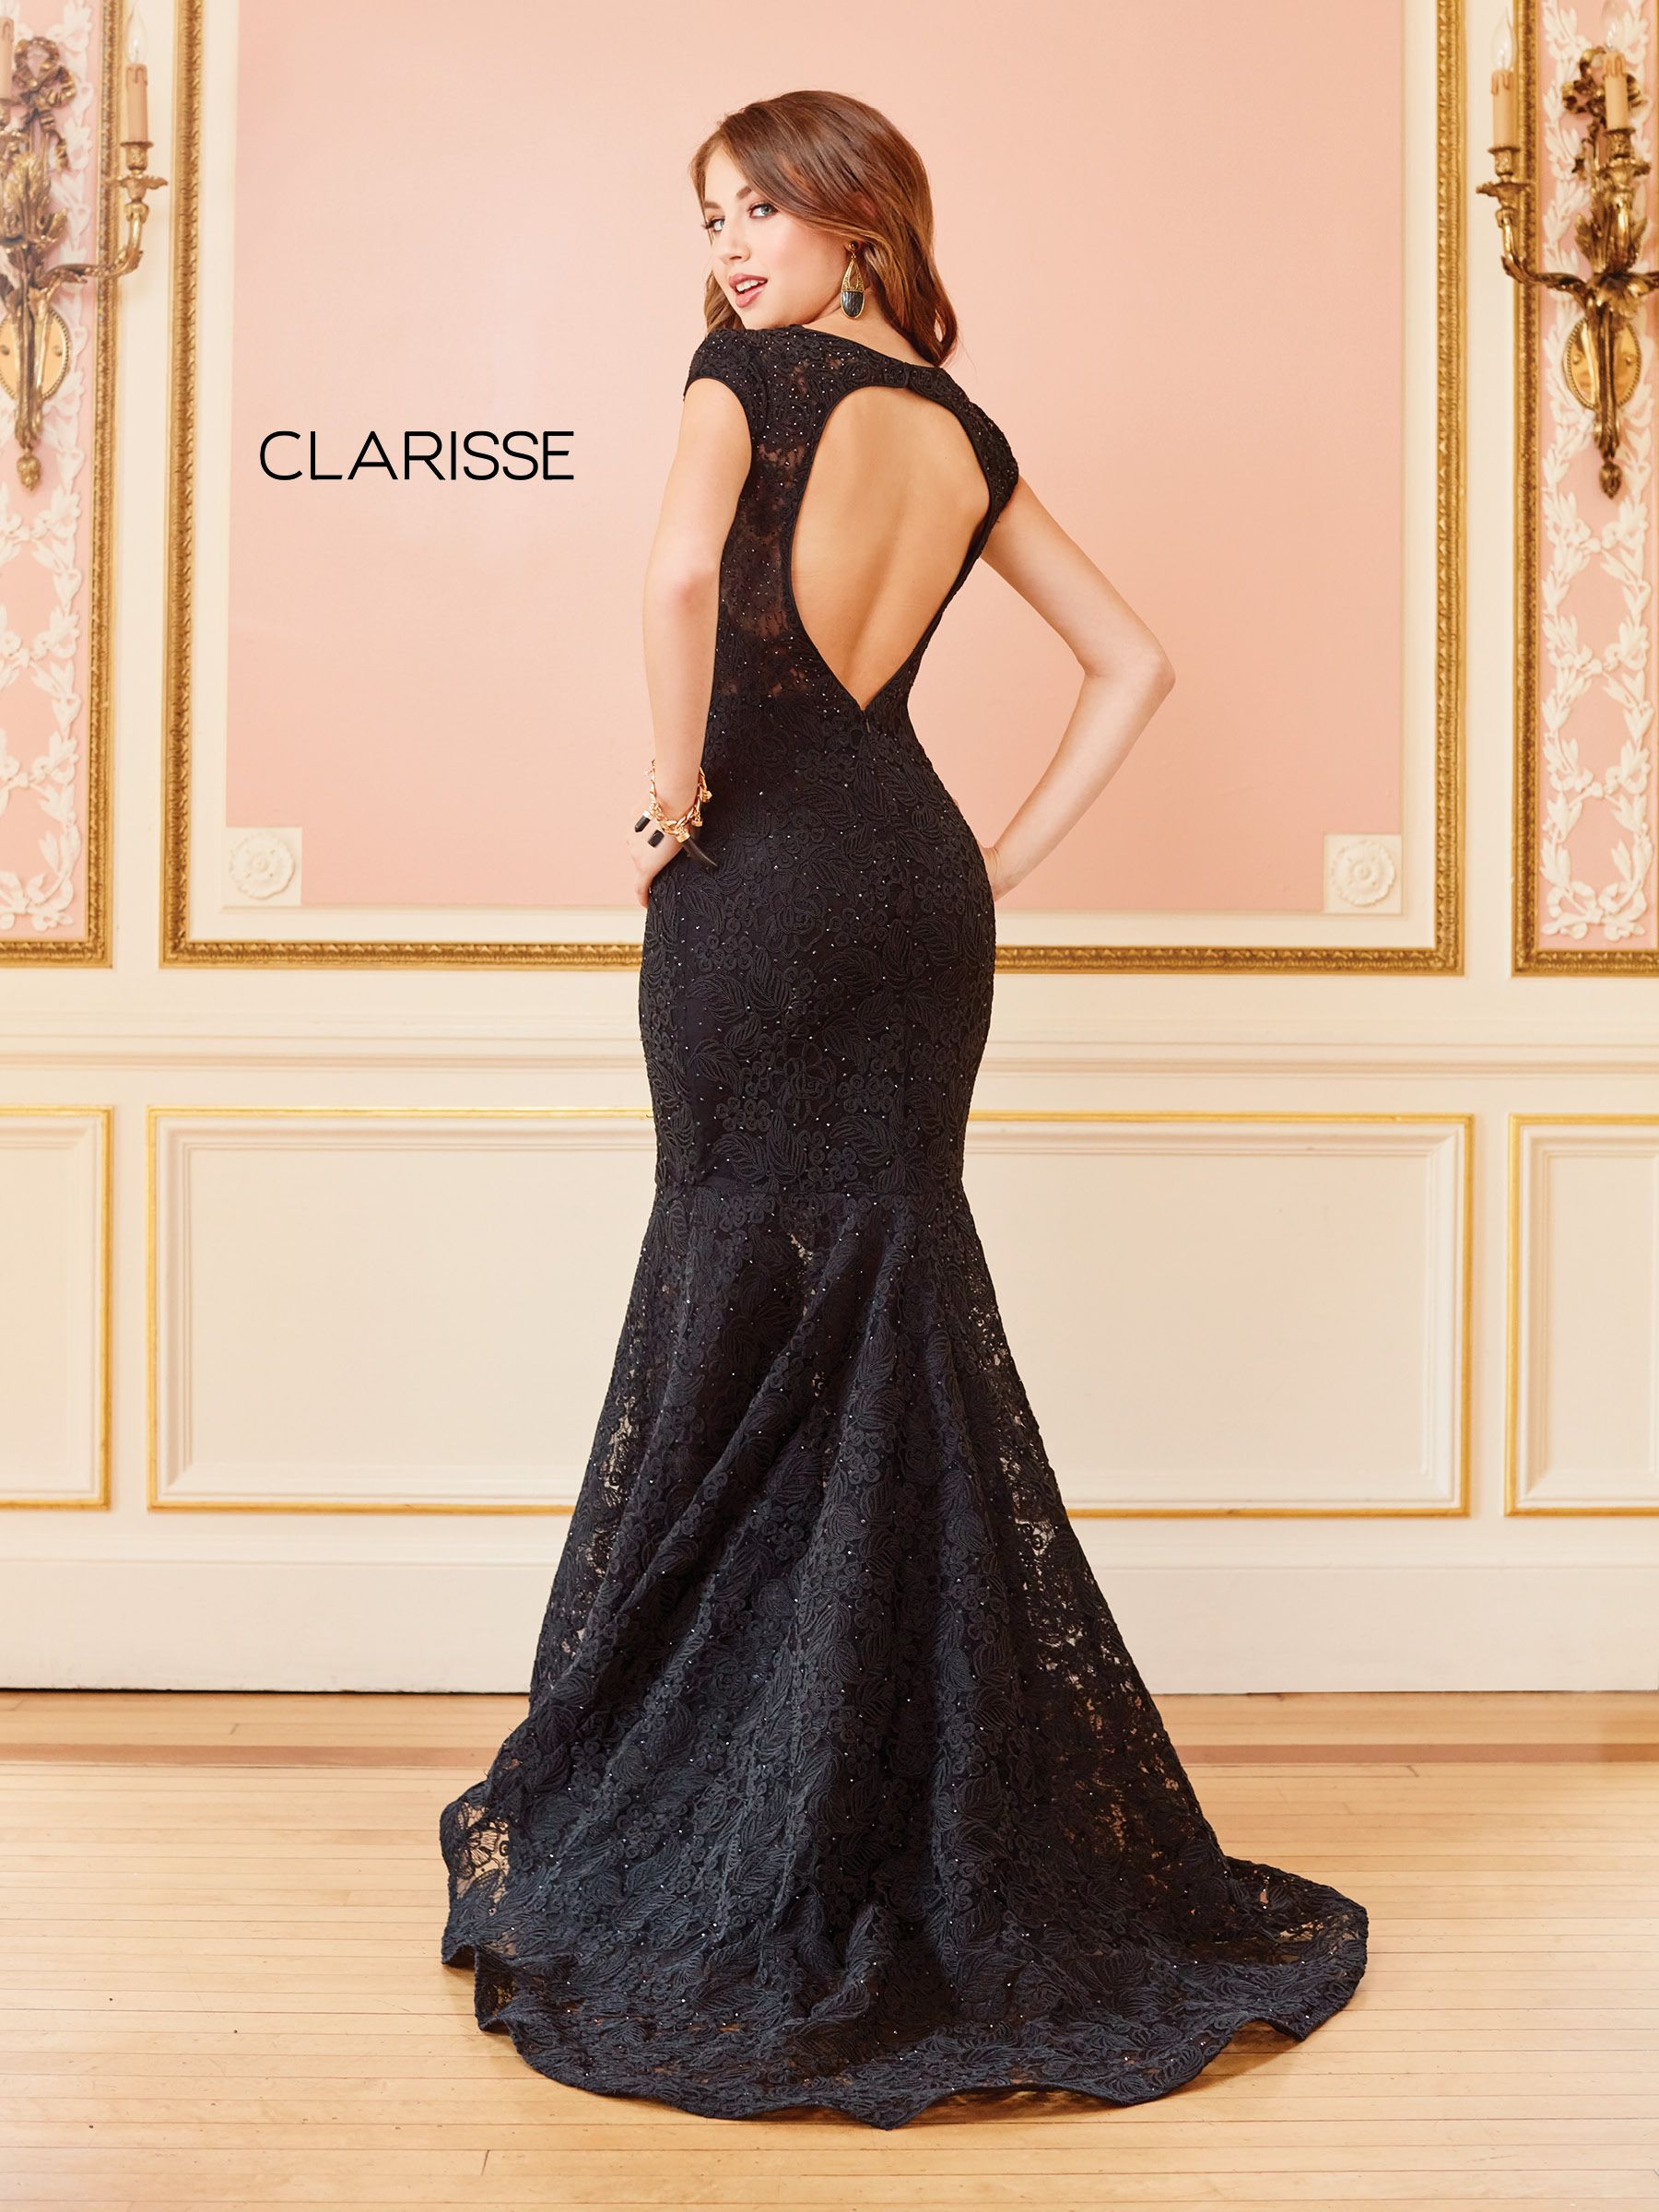 4852 Black Lace Mermaid Dress With Short Sleeves And An Open Back Prom Dresses Sleeveless Tight Prom Dresses Prom Dresses Lace [ 2400 x 1800 Pixel ]